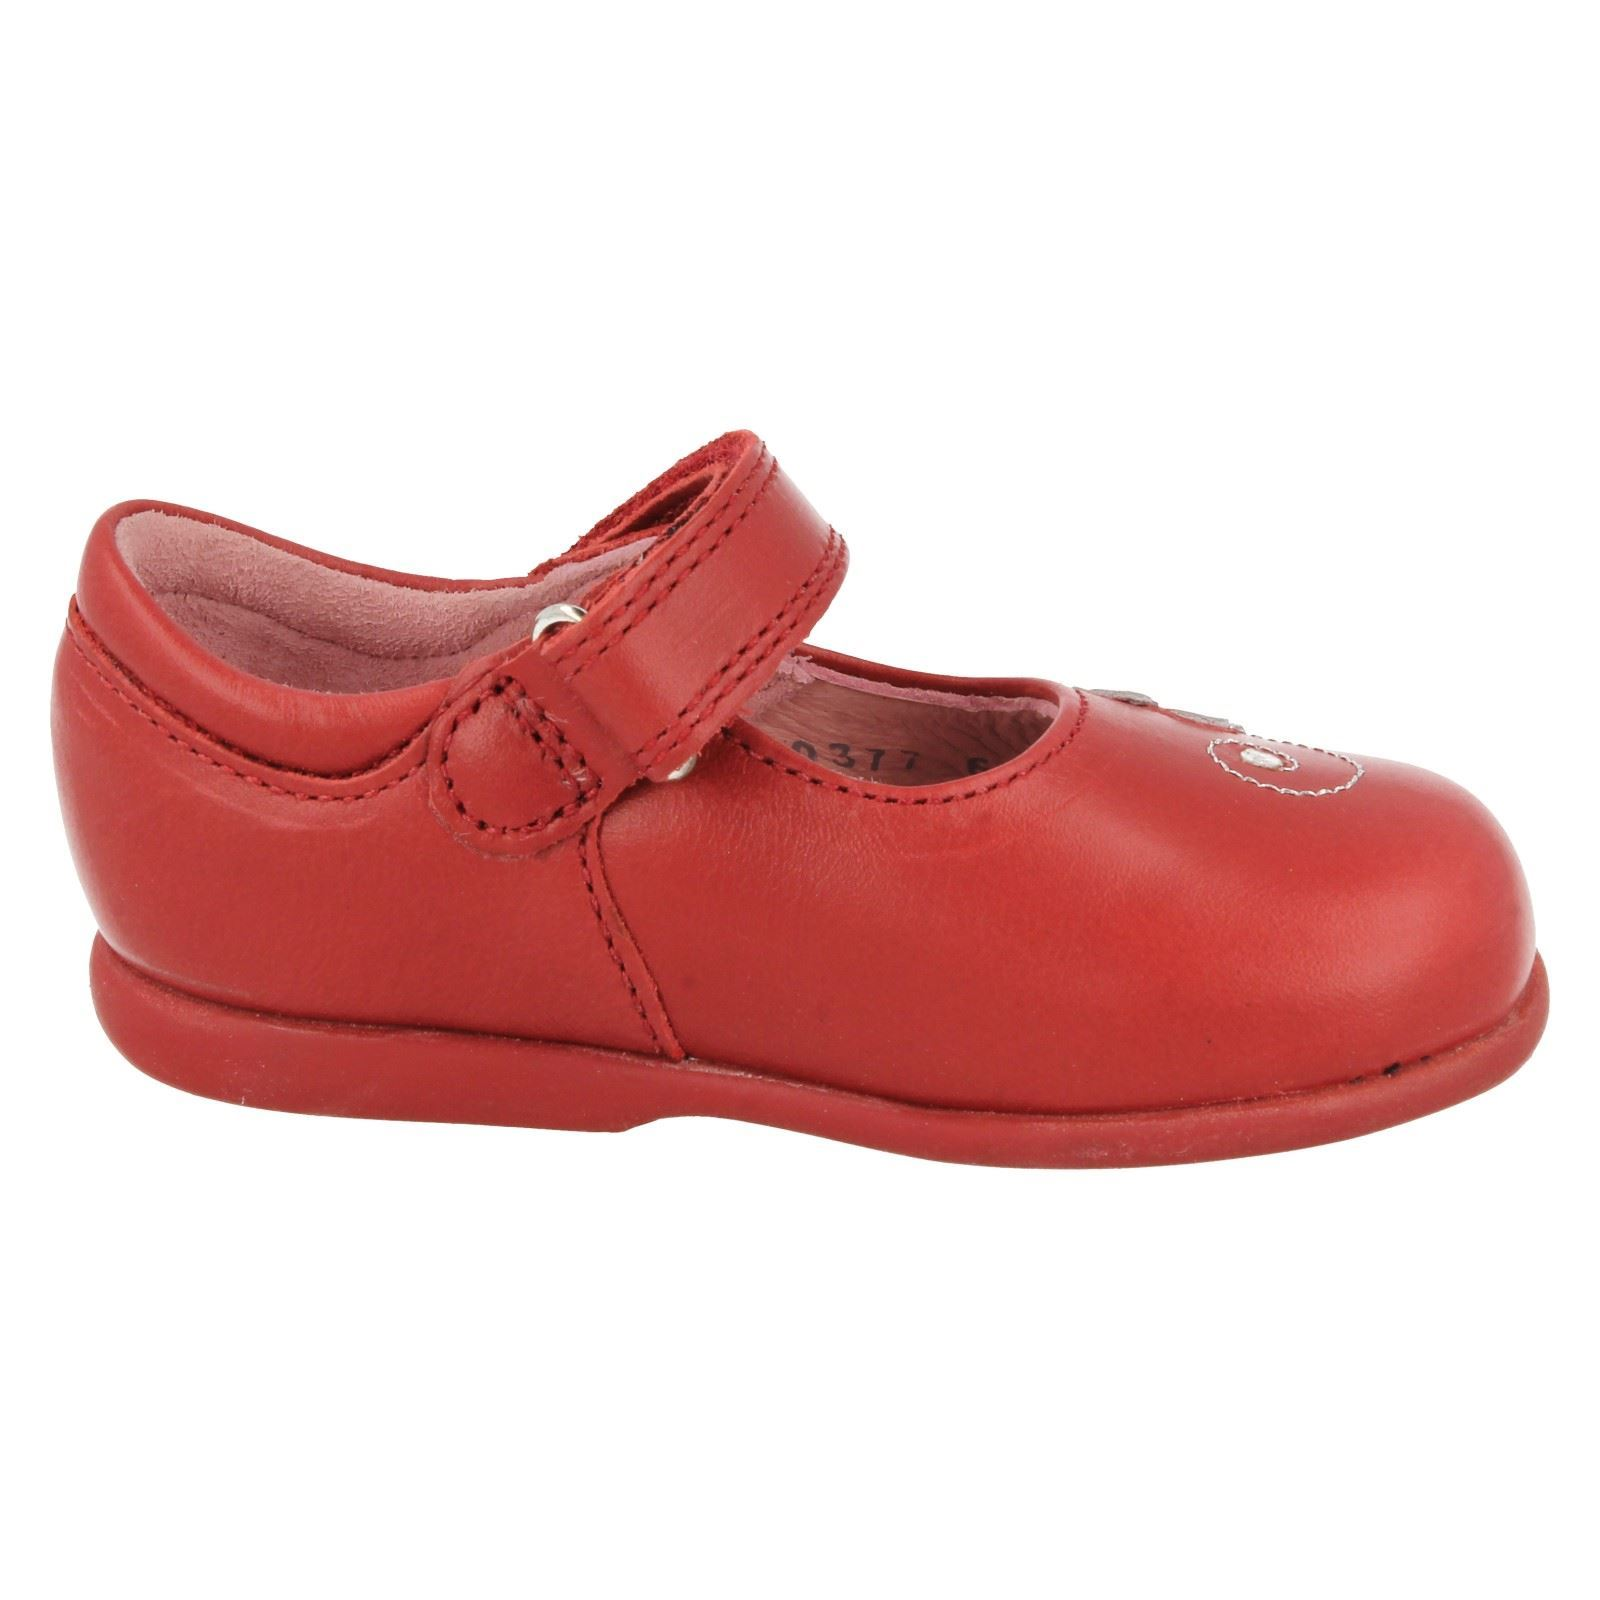 Girls Start Rite First Shoes The Style Lily -W